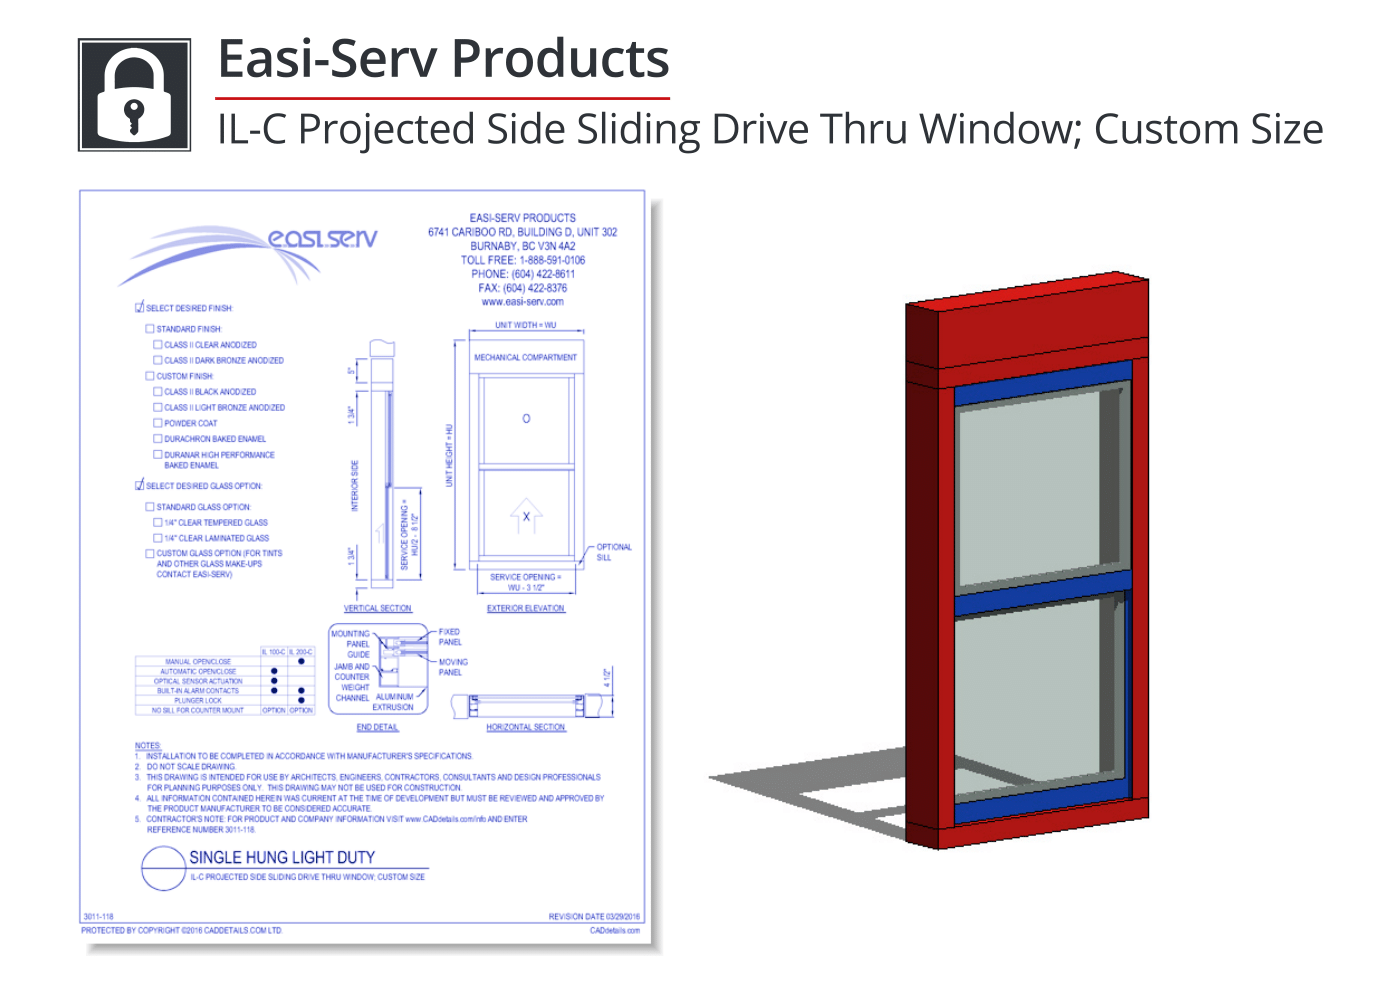 Easi-Serv-Products-Side-Sliding-Drive-Thru-Window-CADdrawing.png